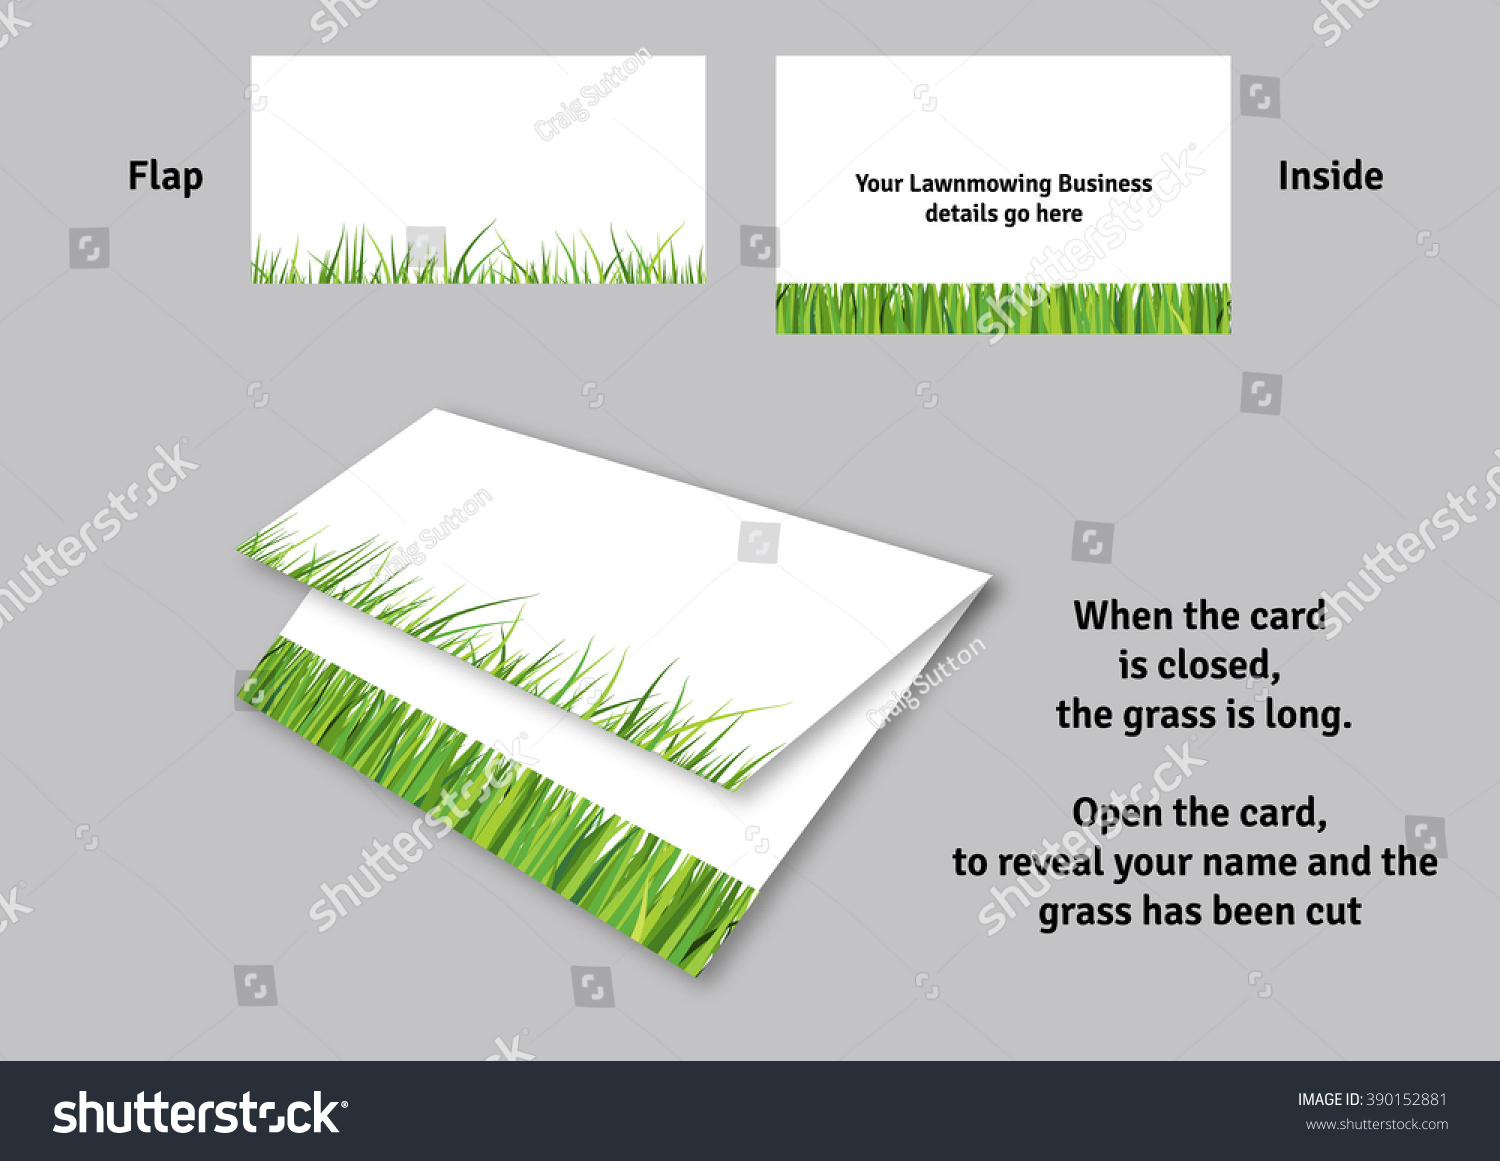 Lawn Mowing Business Card Template Stock Vector (Royalty Free ...